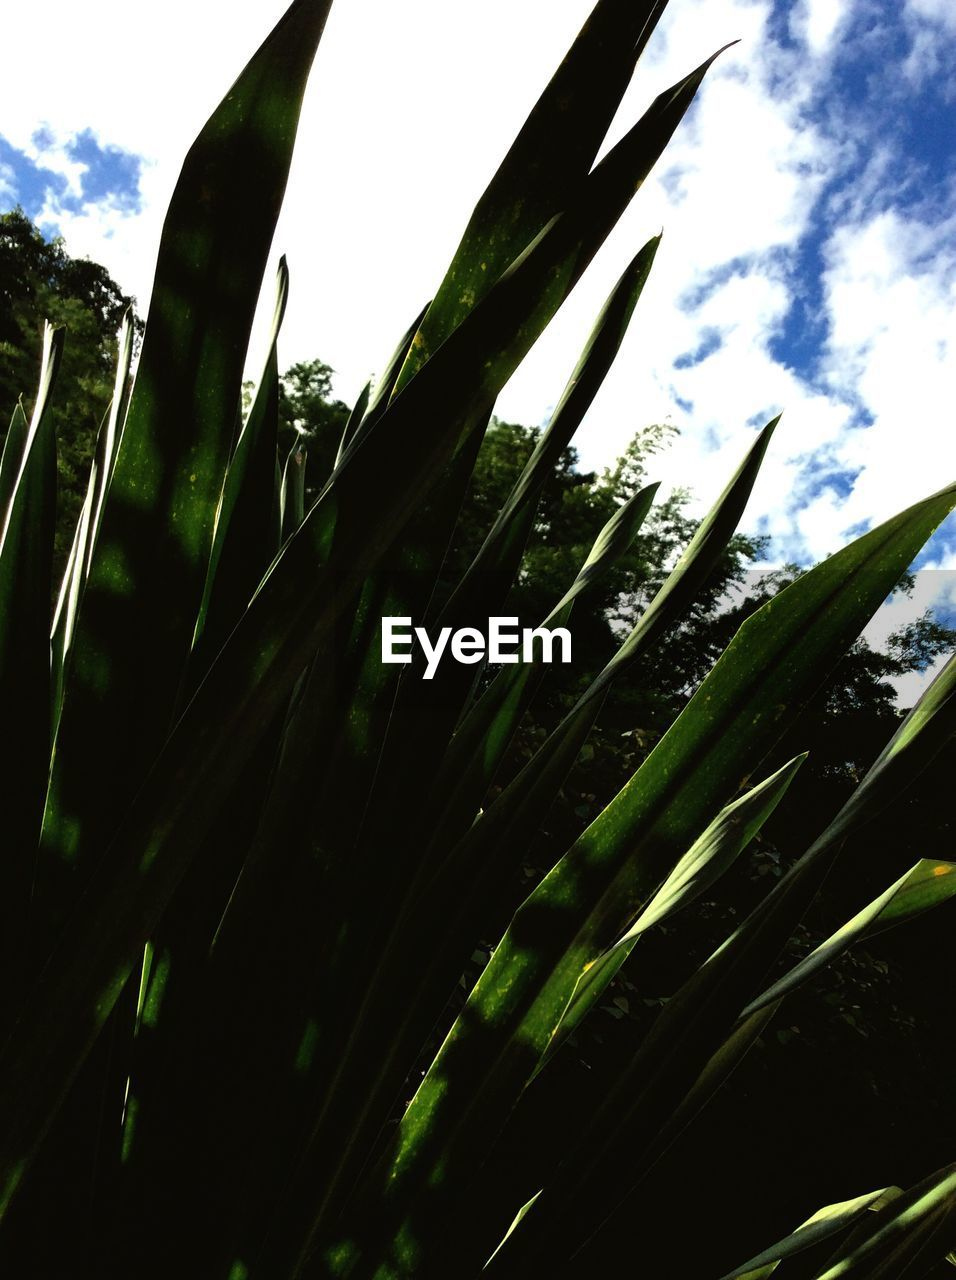 growth, nature, low angle view, sky, day, plant, outdoors, no people, tree, beauty in nature, close-up, freshness